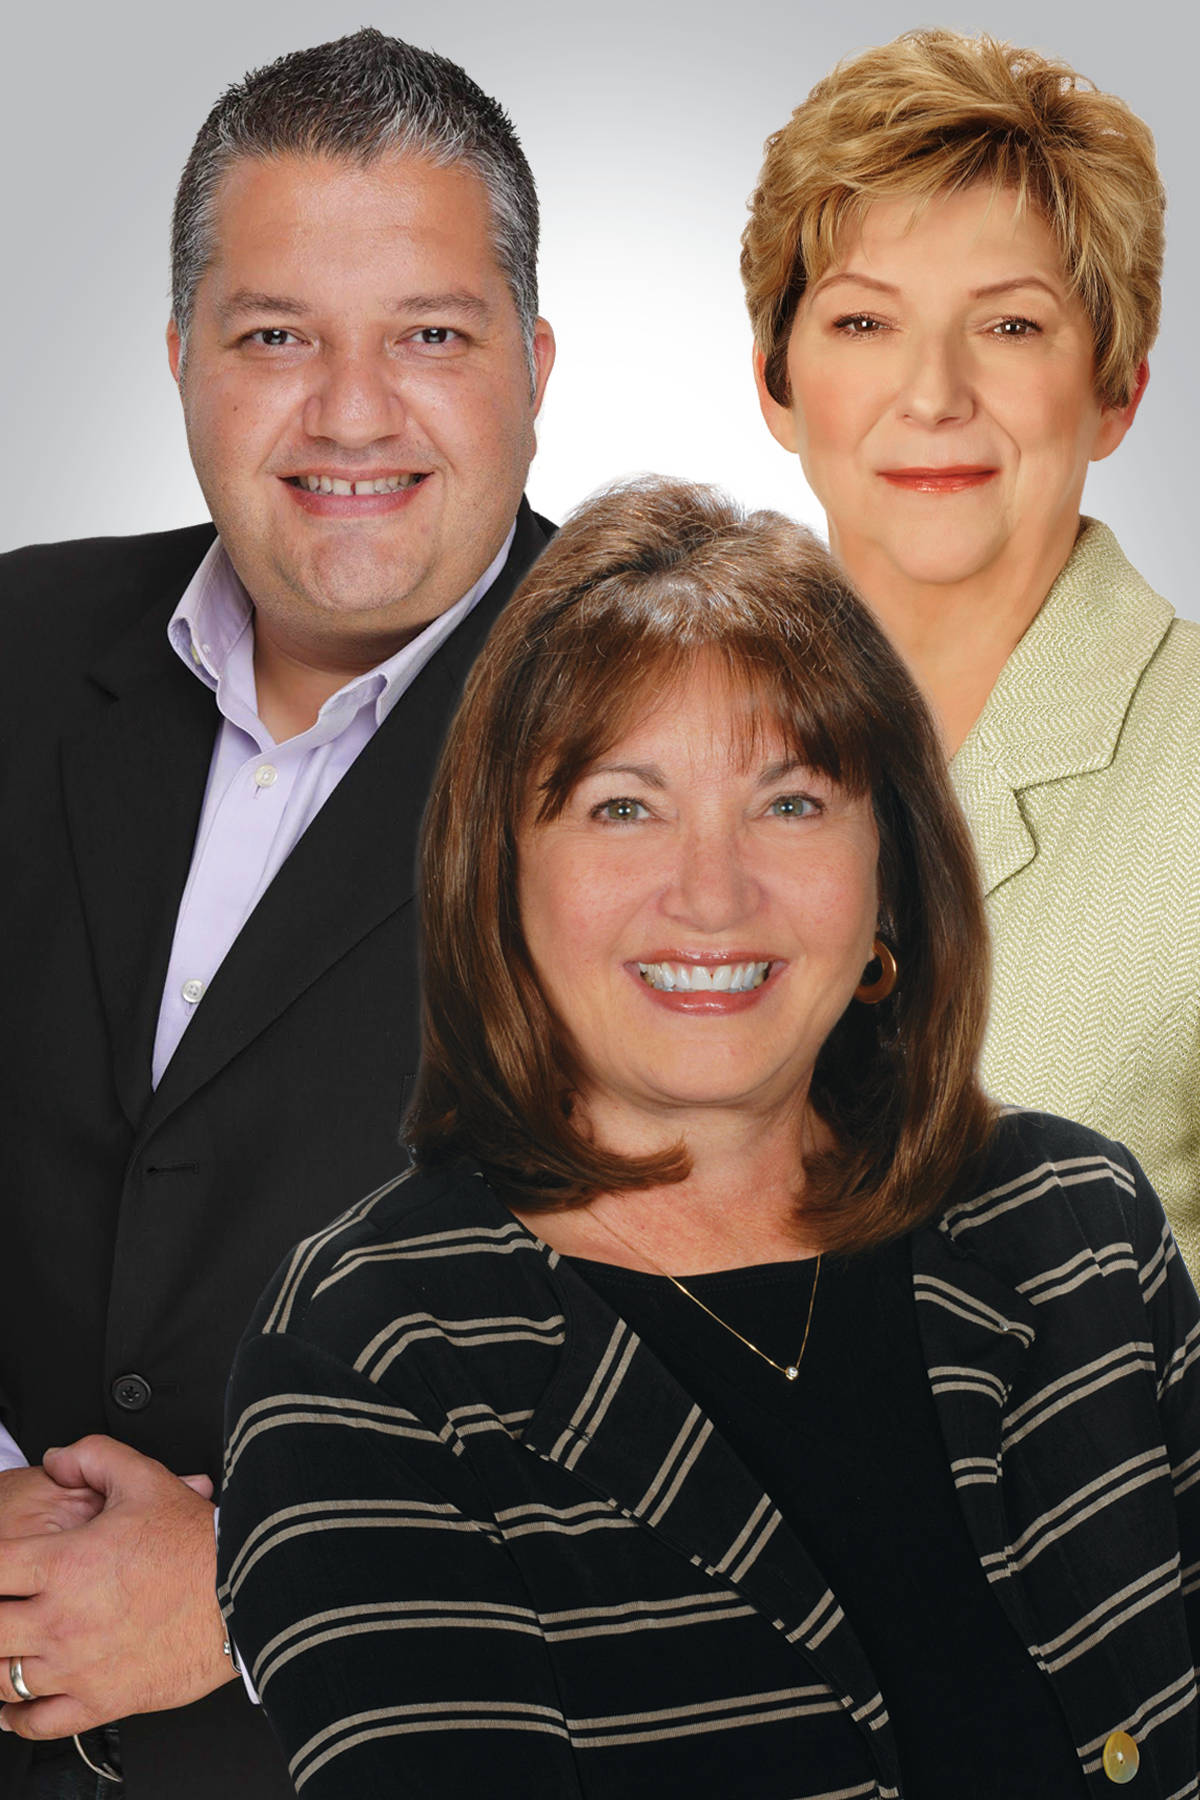 Texas Homes Team